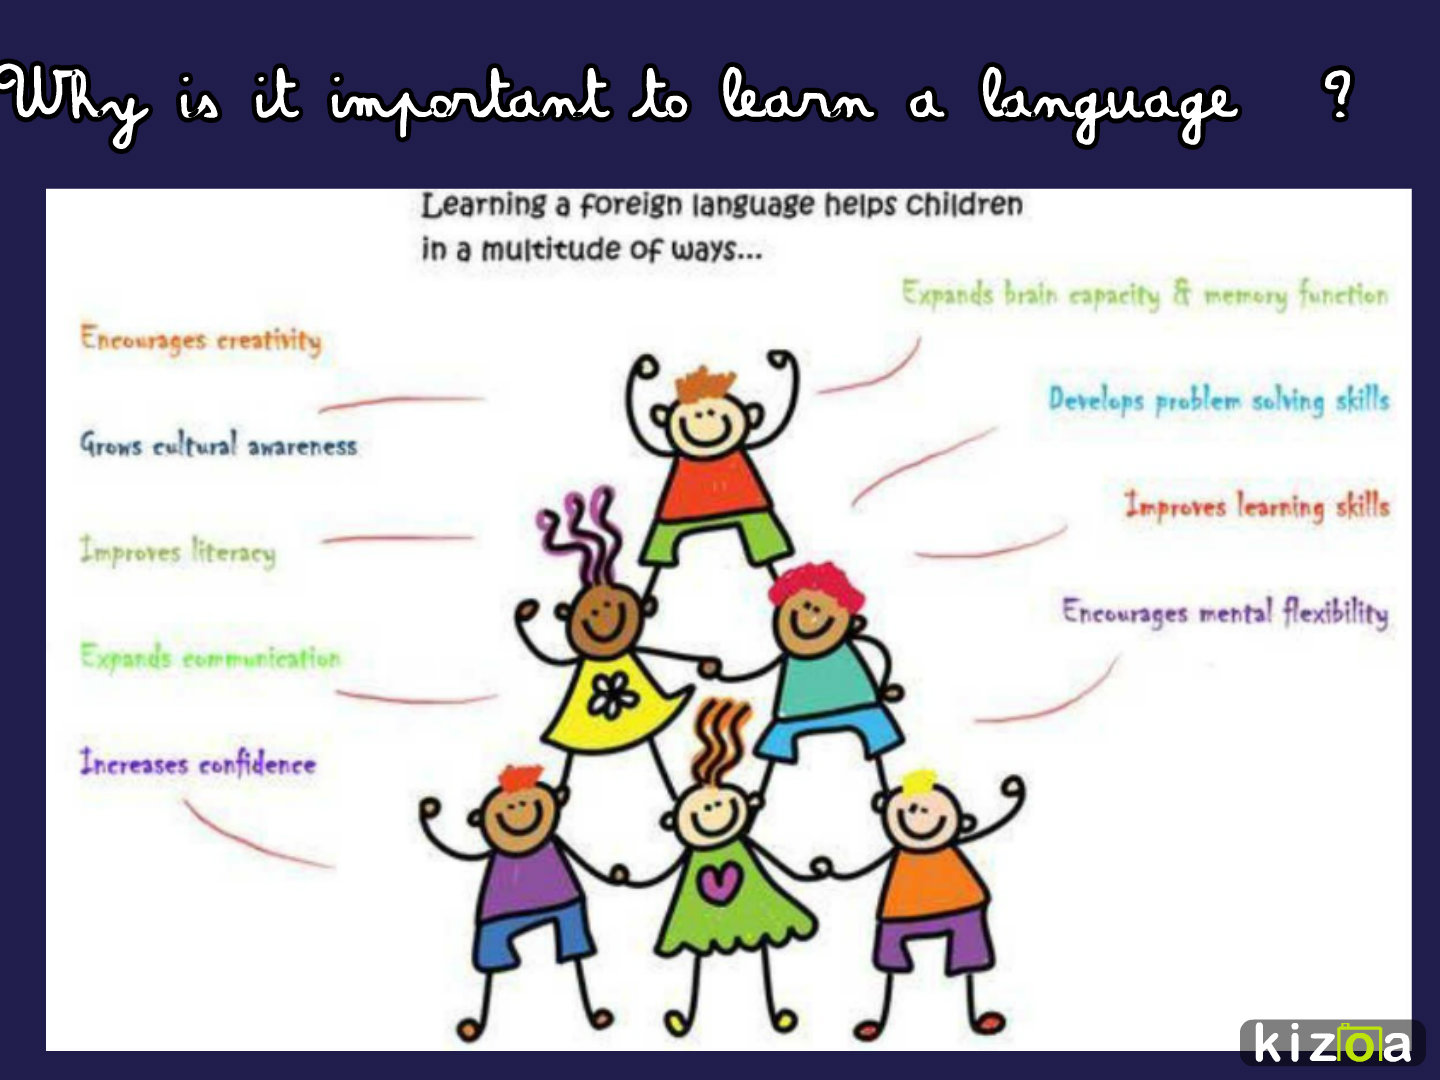 the benefits of learning the foreign languages These cognitive benefits of language learning have been shown to enhance student performance producing: higher standardized test scores larson-hall, j (2008) weighing the benefits of studying a foreign language at a younger starting age in a minimal input situation.